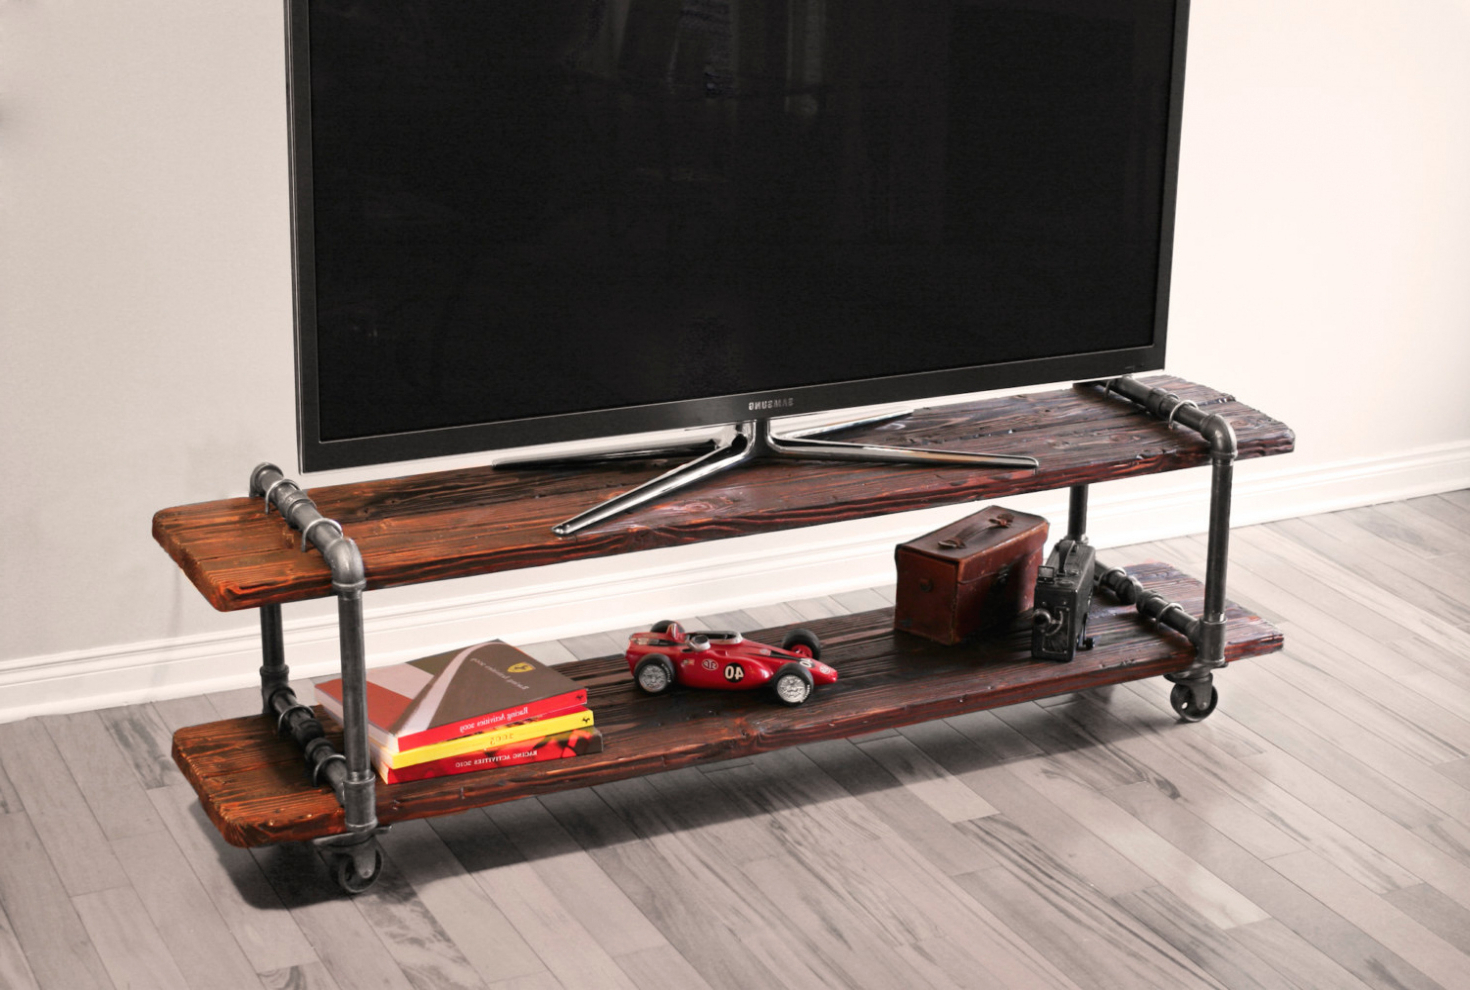 2017 Industrial Style Tv Stands Pertaining To Cool Industrial Style Cast Iron Pipe And Wood Diy Tv Stand With In (View 11 of 20)